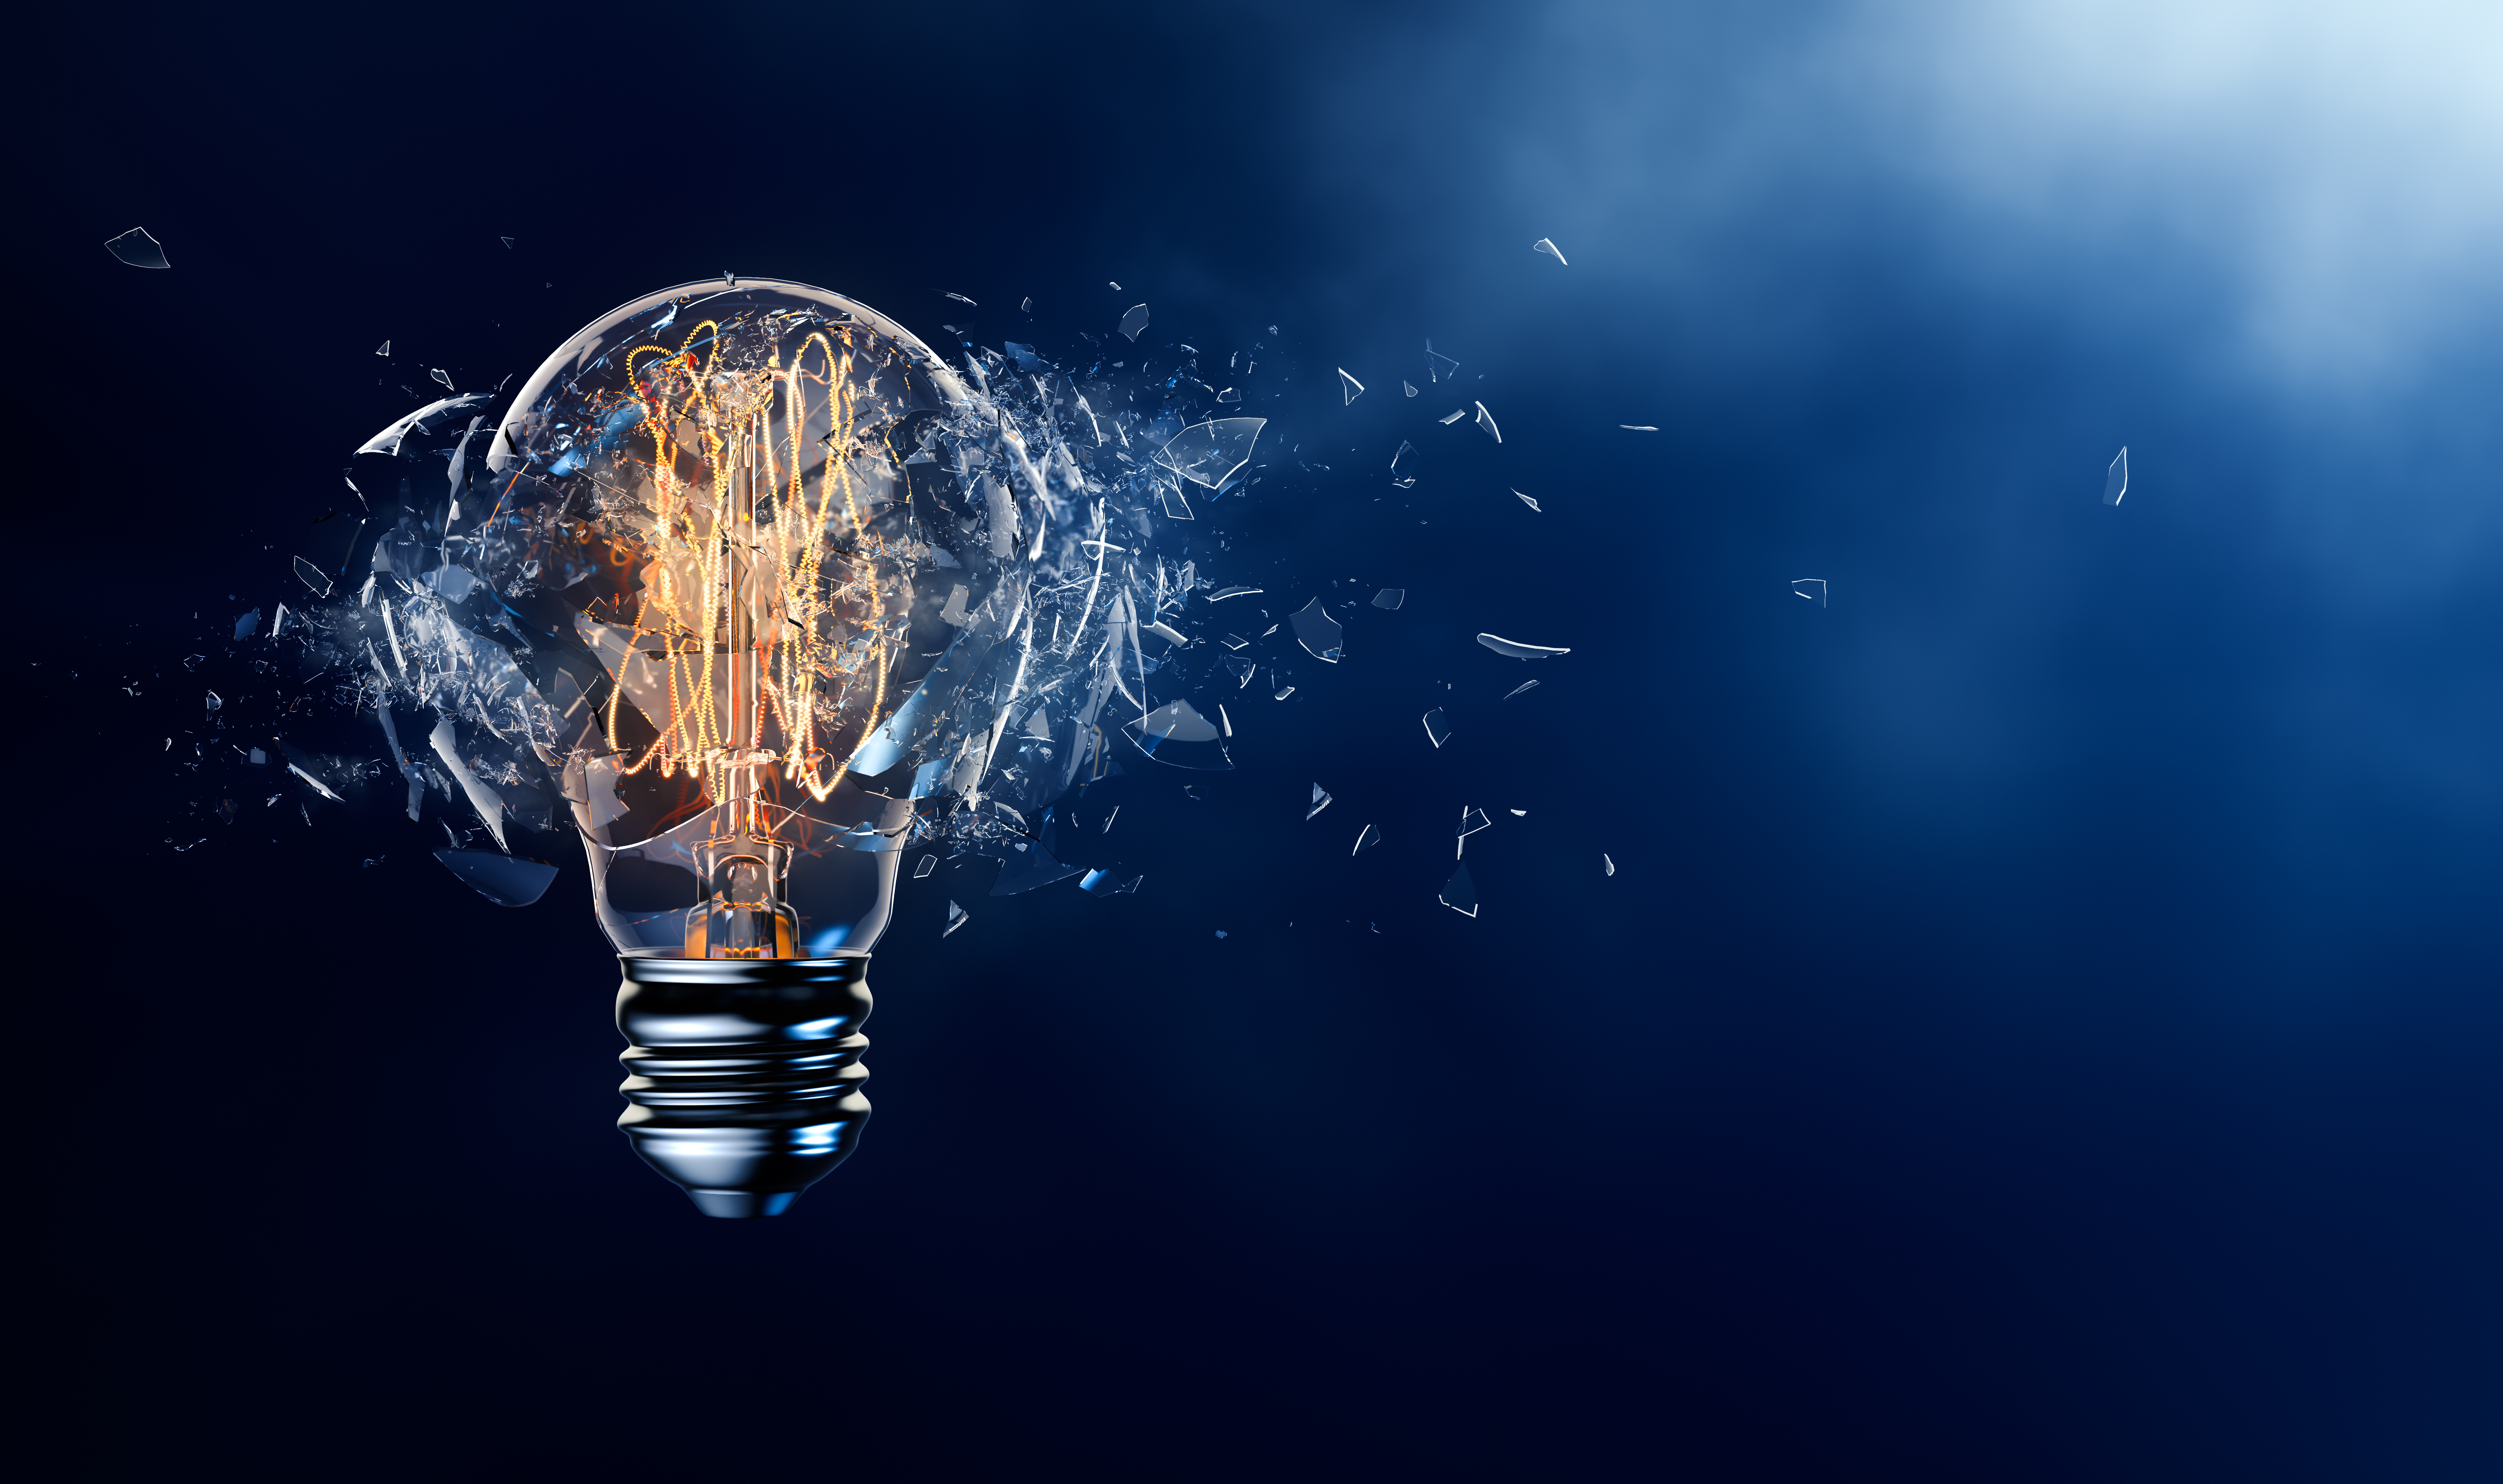 3 Highlights from Celent's Innovation & Insight Day